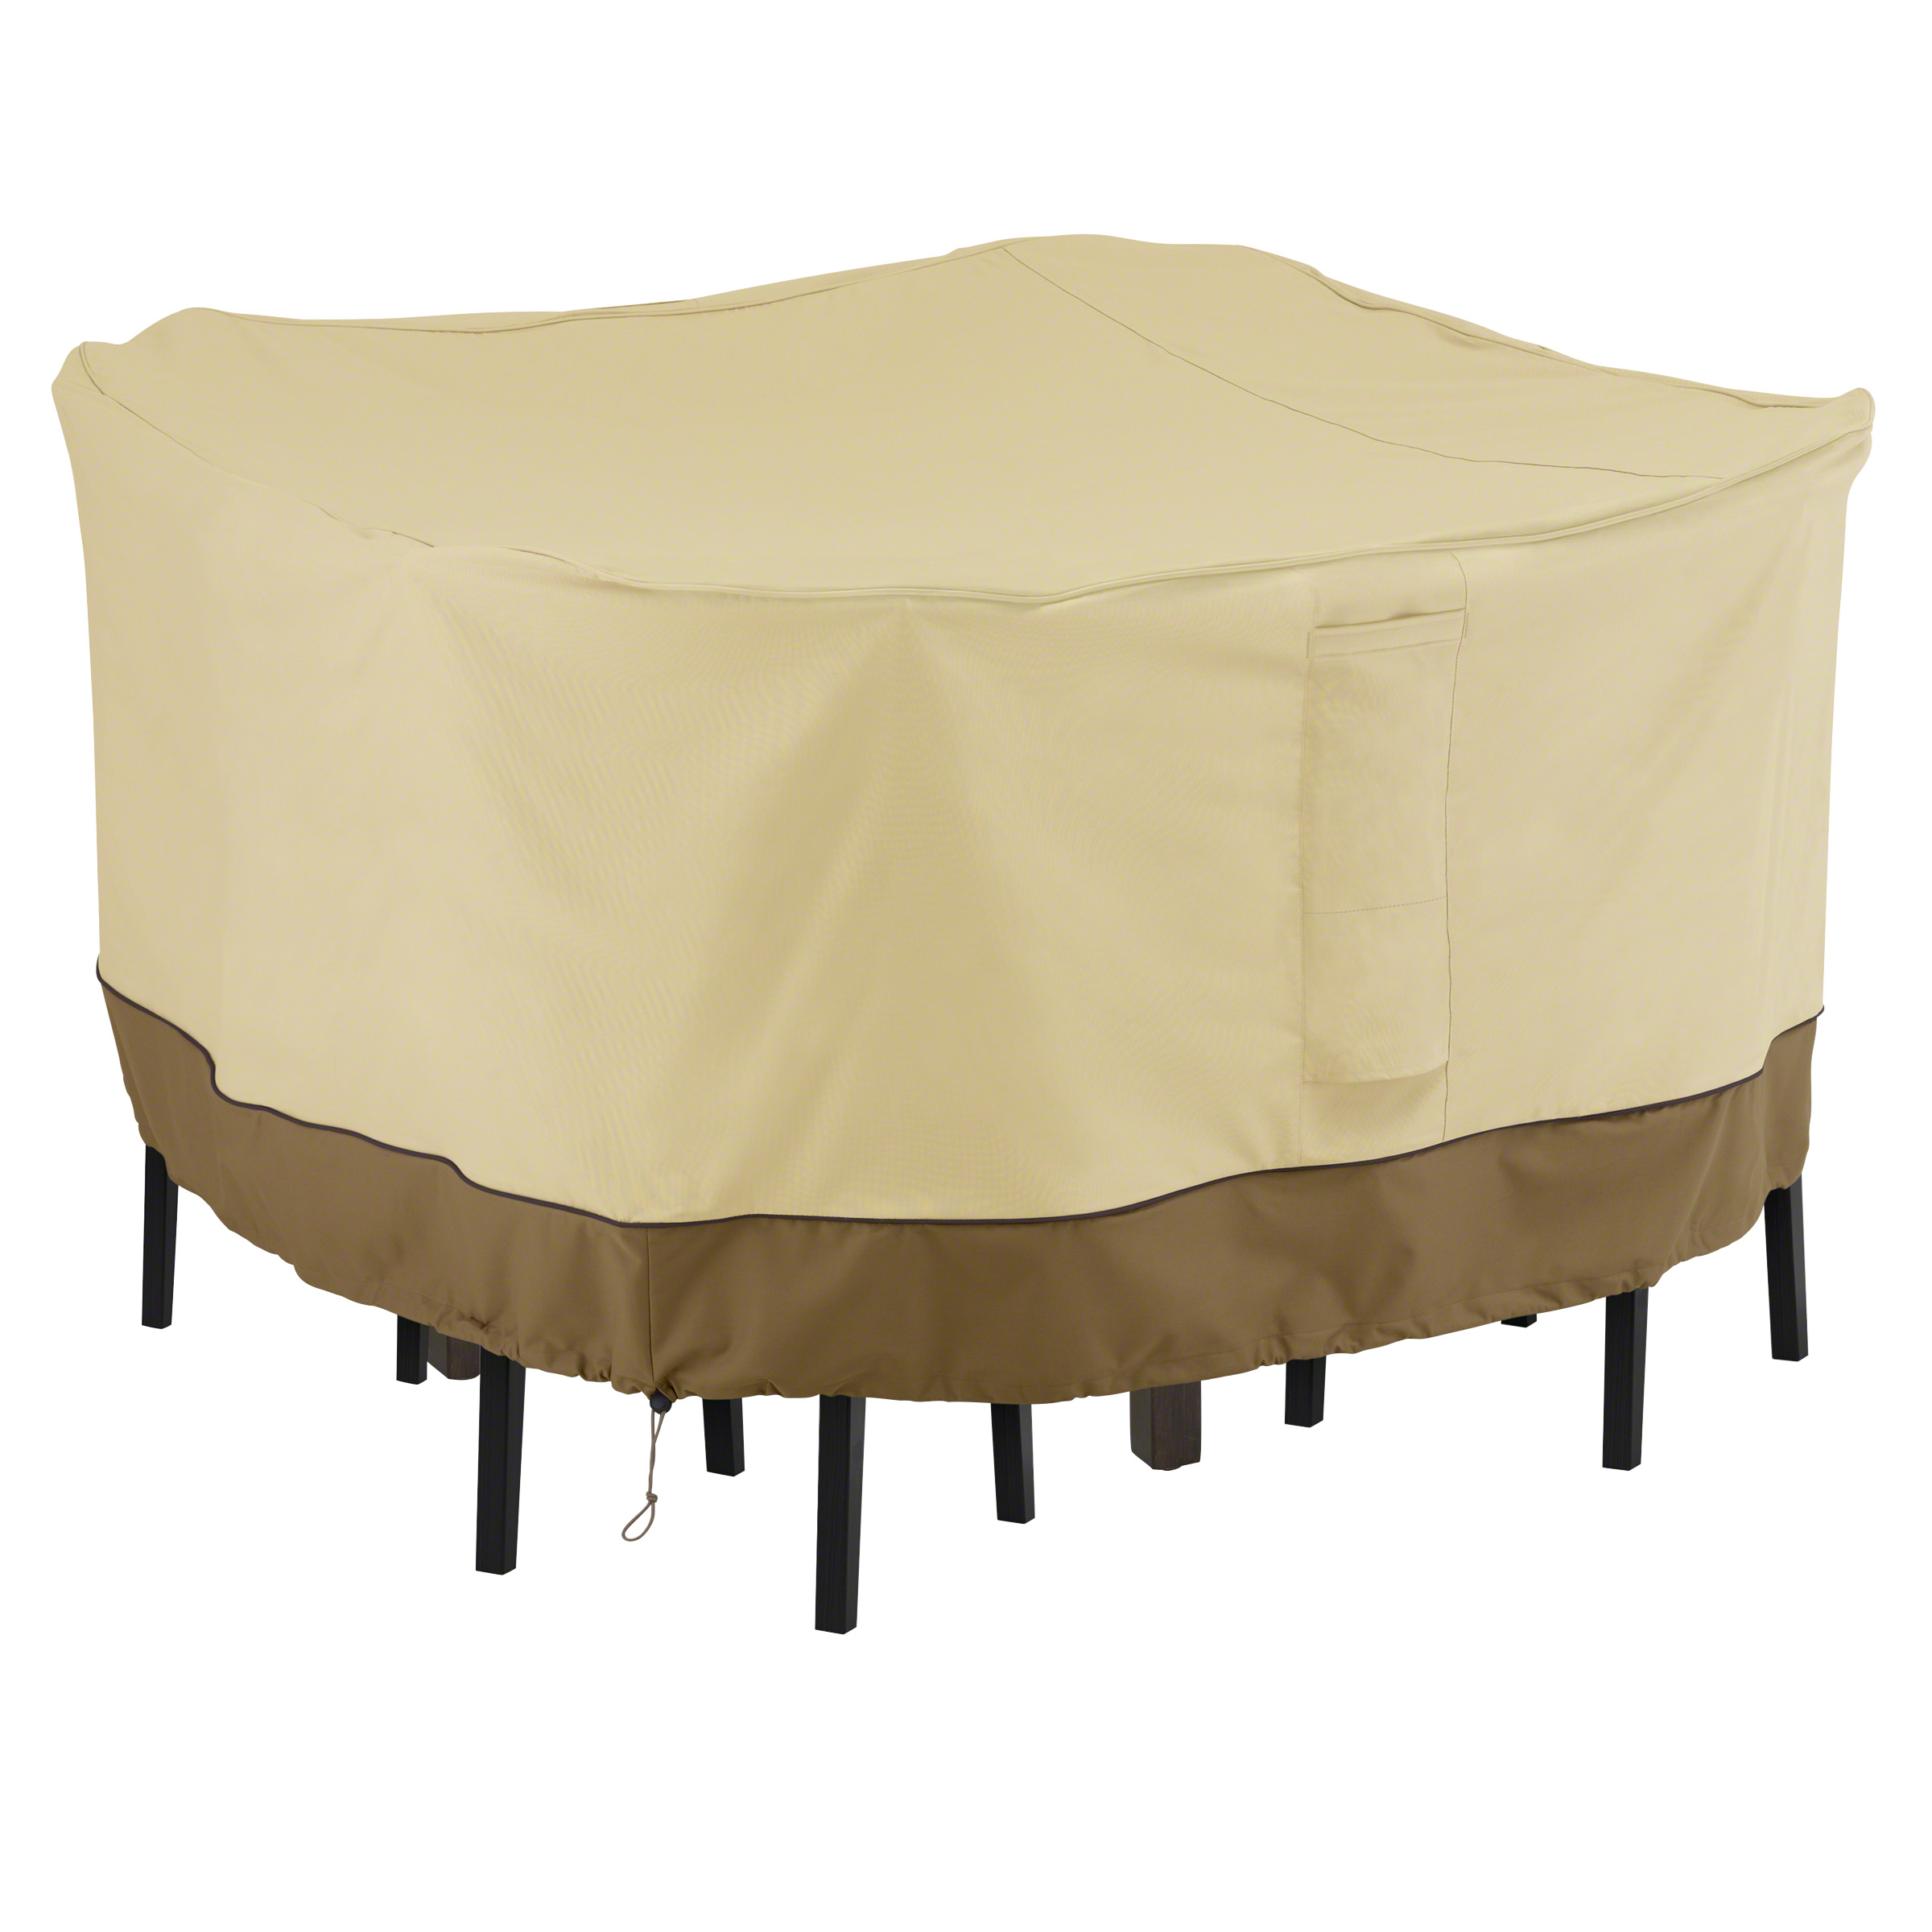 Classic Accessories Veranda™ Square Bar Table \u0026 Chair Set Cover - Durable and Water Resistant  sc 1 st  Walmart & Classic Accessories Veranda™ Square Bar Table \u0026 Chair Set Cover ...